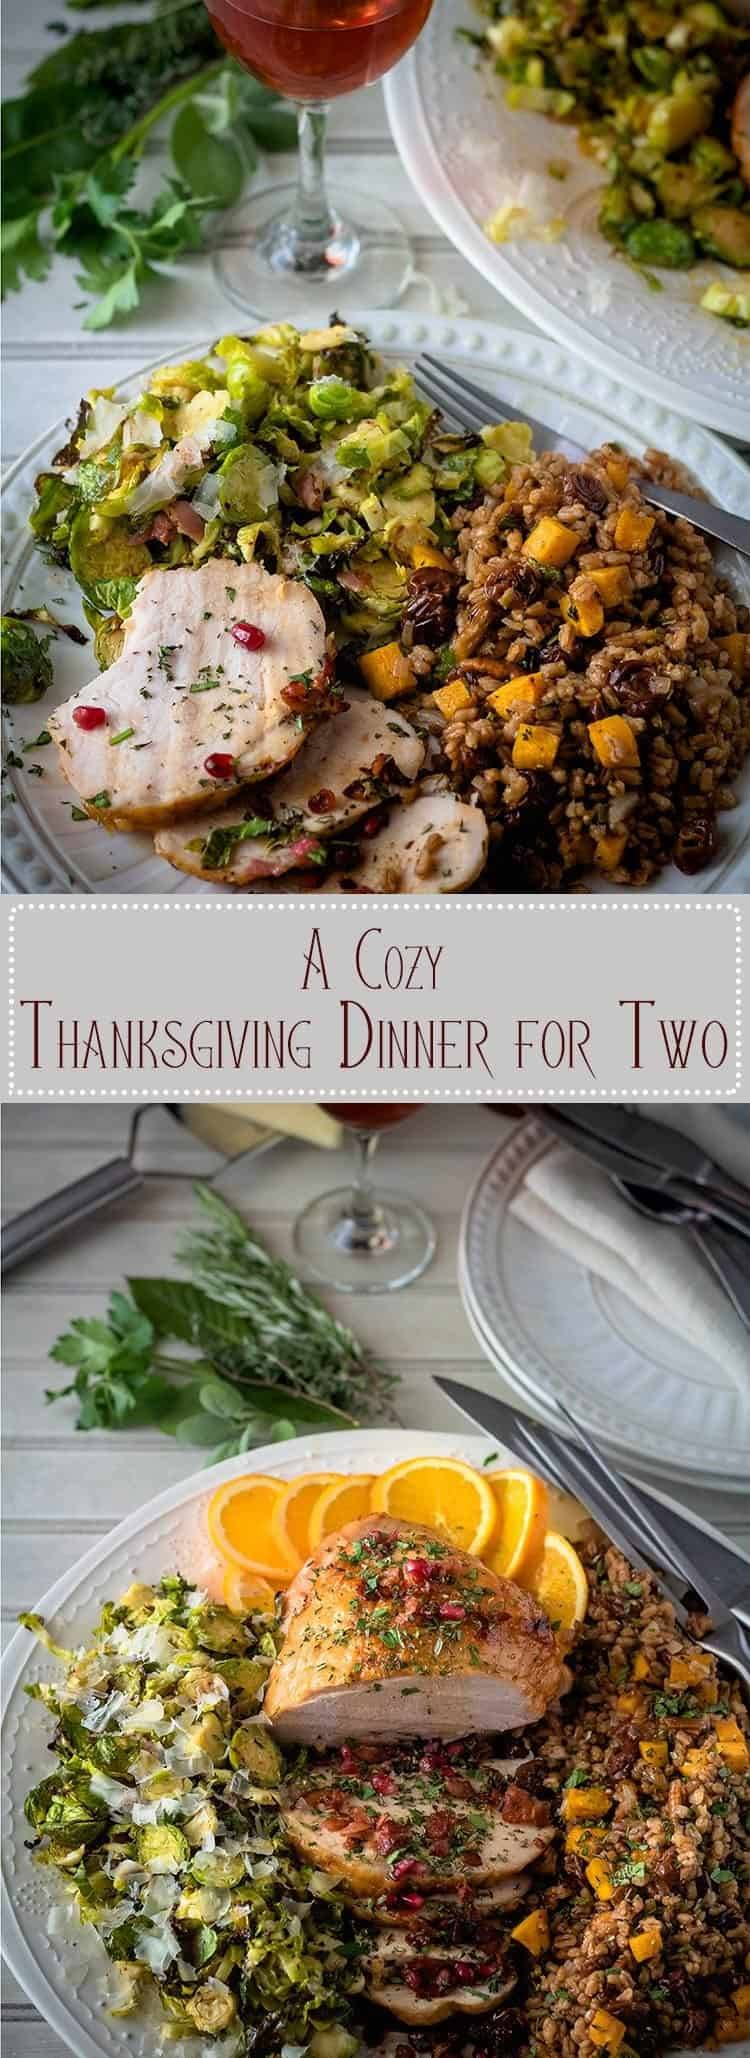 A lovely Citrus and Herb Roasted Turkey Breast accompanied by Shaved Roasted Brussels with Pecorino and Pancetta and Herbed Farro Dressing with Butternut Squash, Dried Cherries, and Pecans covers the flavors of the season with elegant flair! And it's healthy too! #Thanksgivingdinnerfortwo #healthyThanksgivingdishes #roastedturkeybreast #roastedbrusselssprouts #farrodressing #citrusbrine